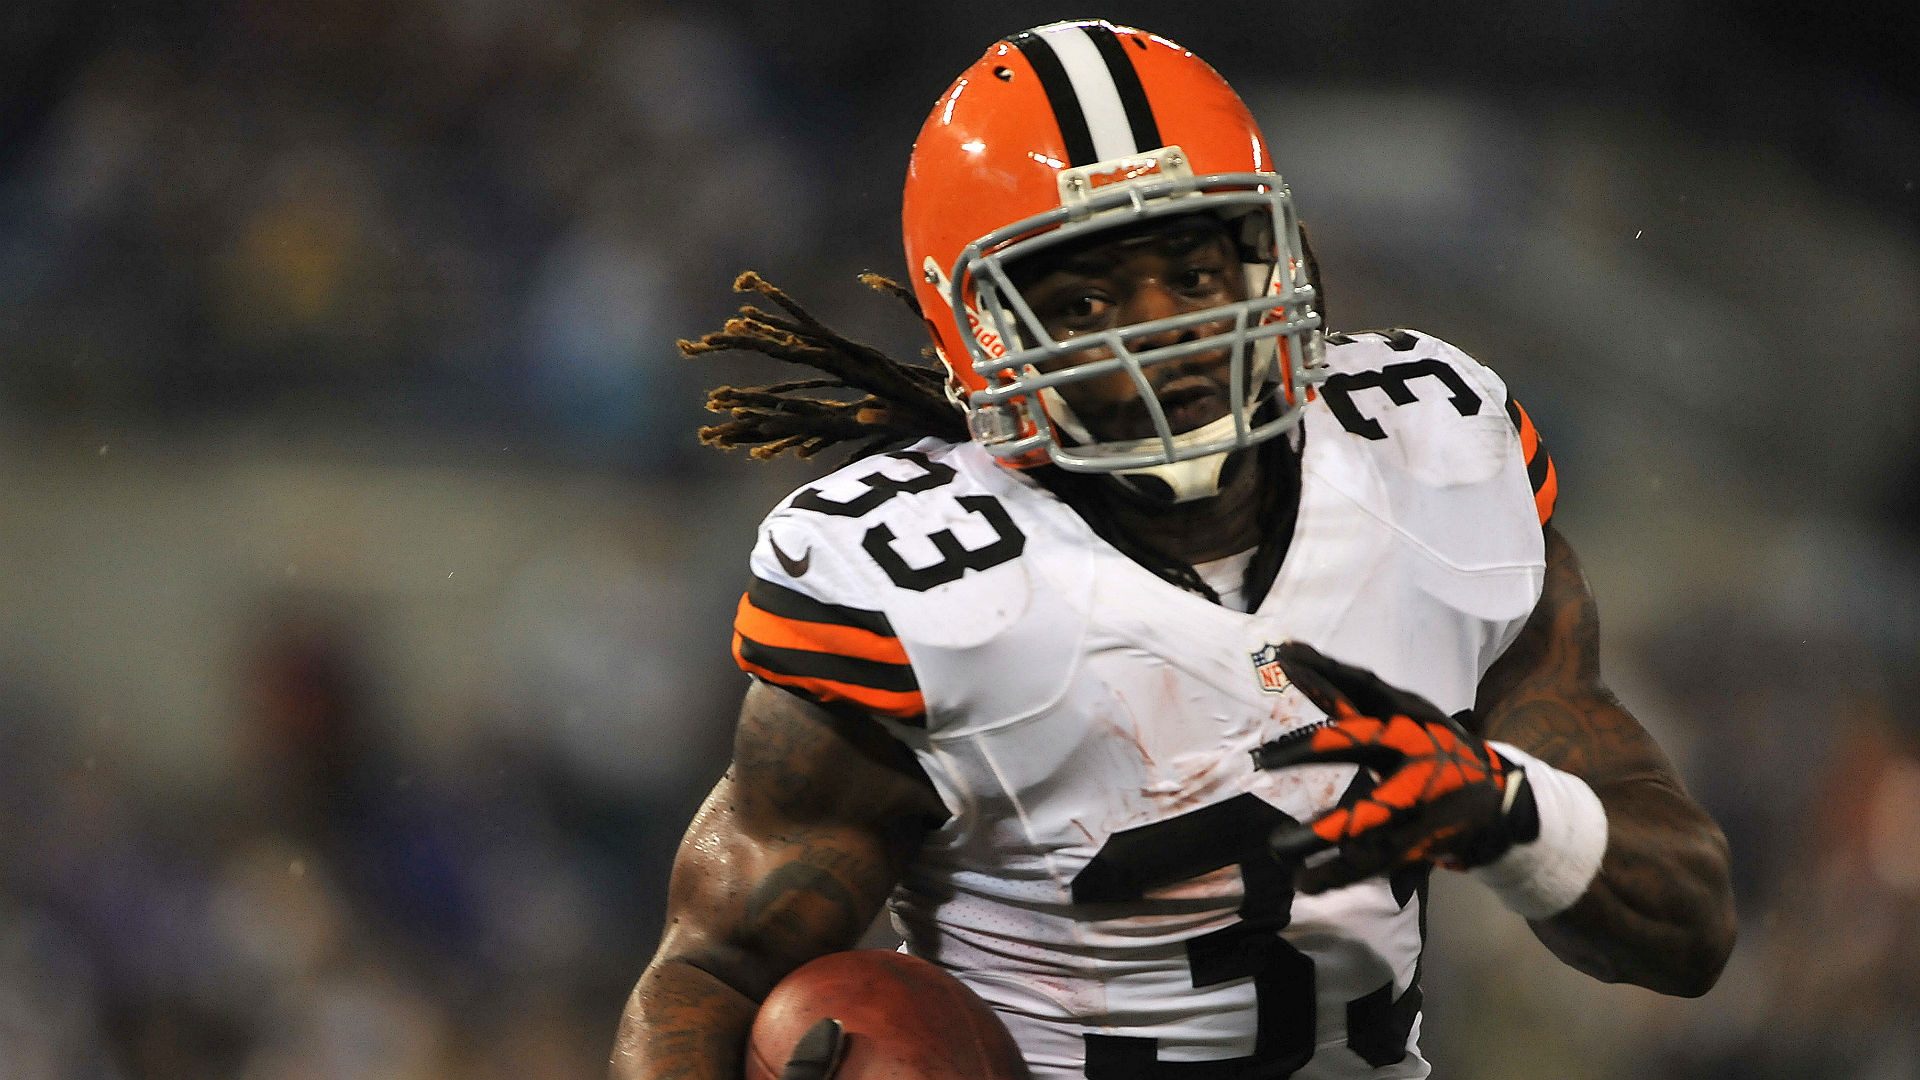 Former Cleveland Browns RB Trent Richardson signs with CFL's Saskatchewan Roughriders